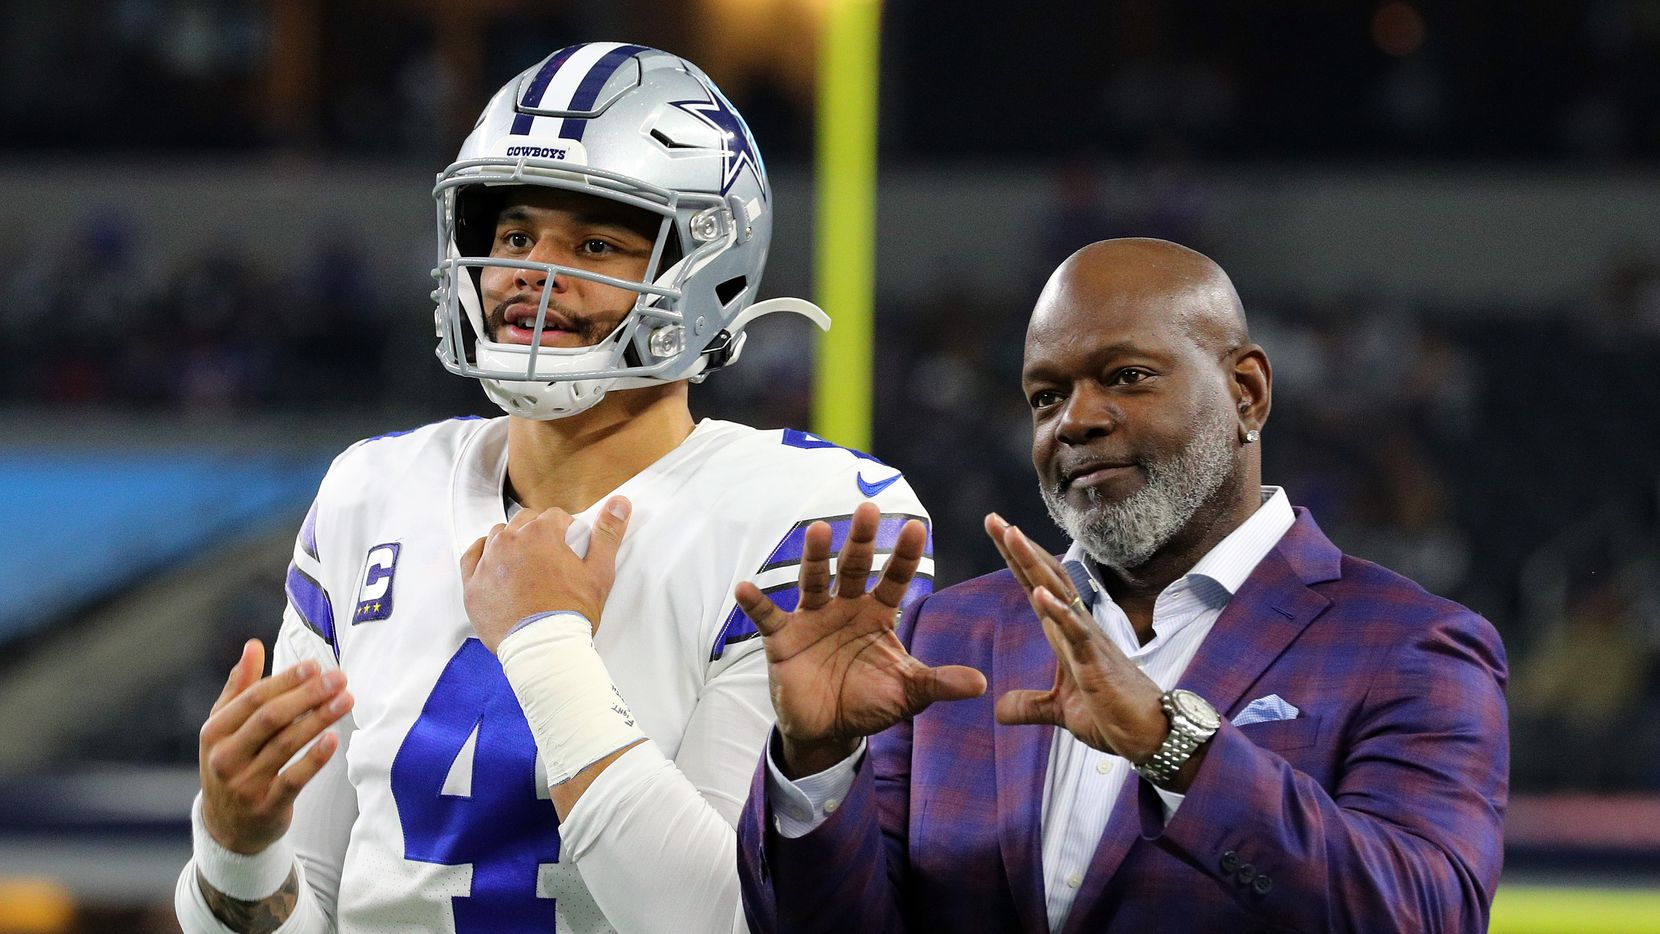 Dak Prescott of the Dallas Cowboys waits for the ball with former Cowboys running back Emmitt SMith before the game against the Buffalo Bills at AT&T Stadium on November 28, 2019 in Arlington, Texas.